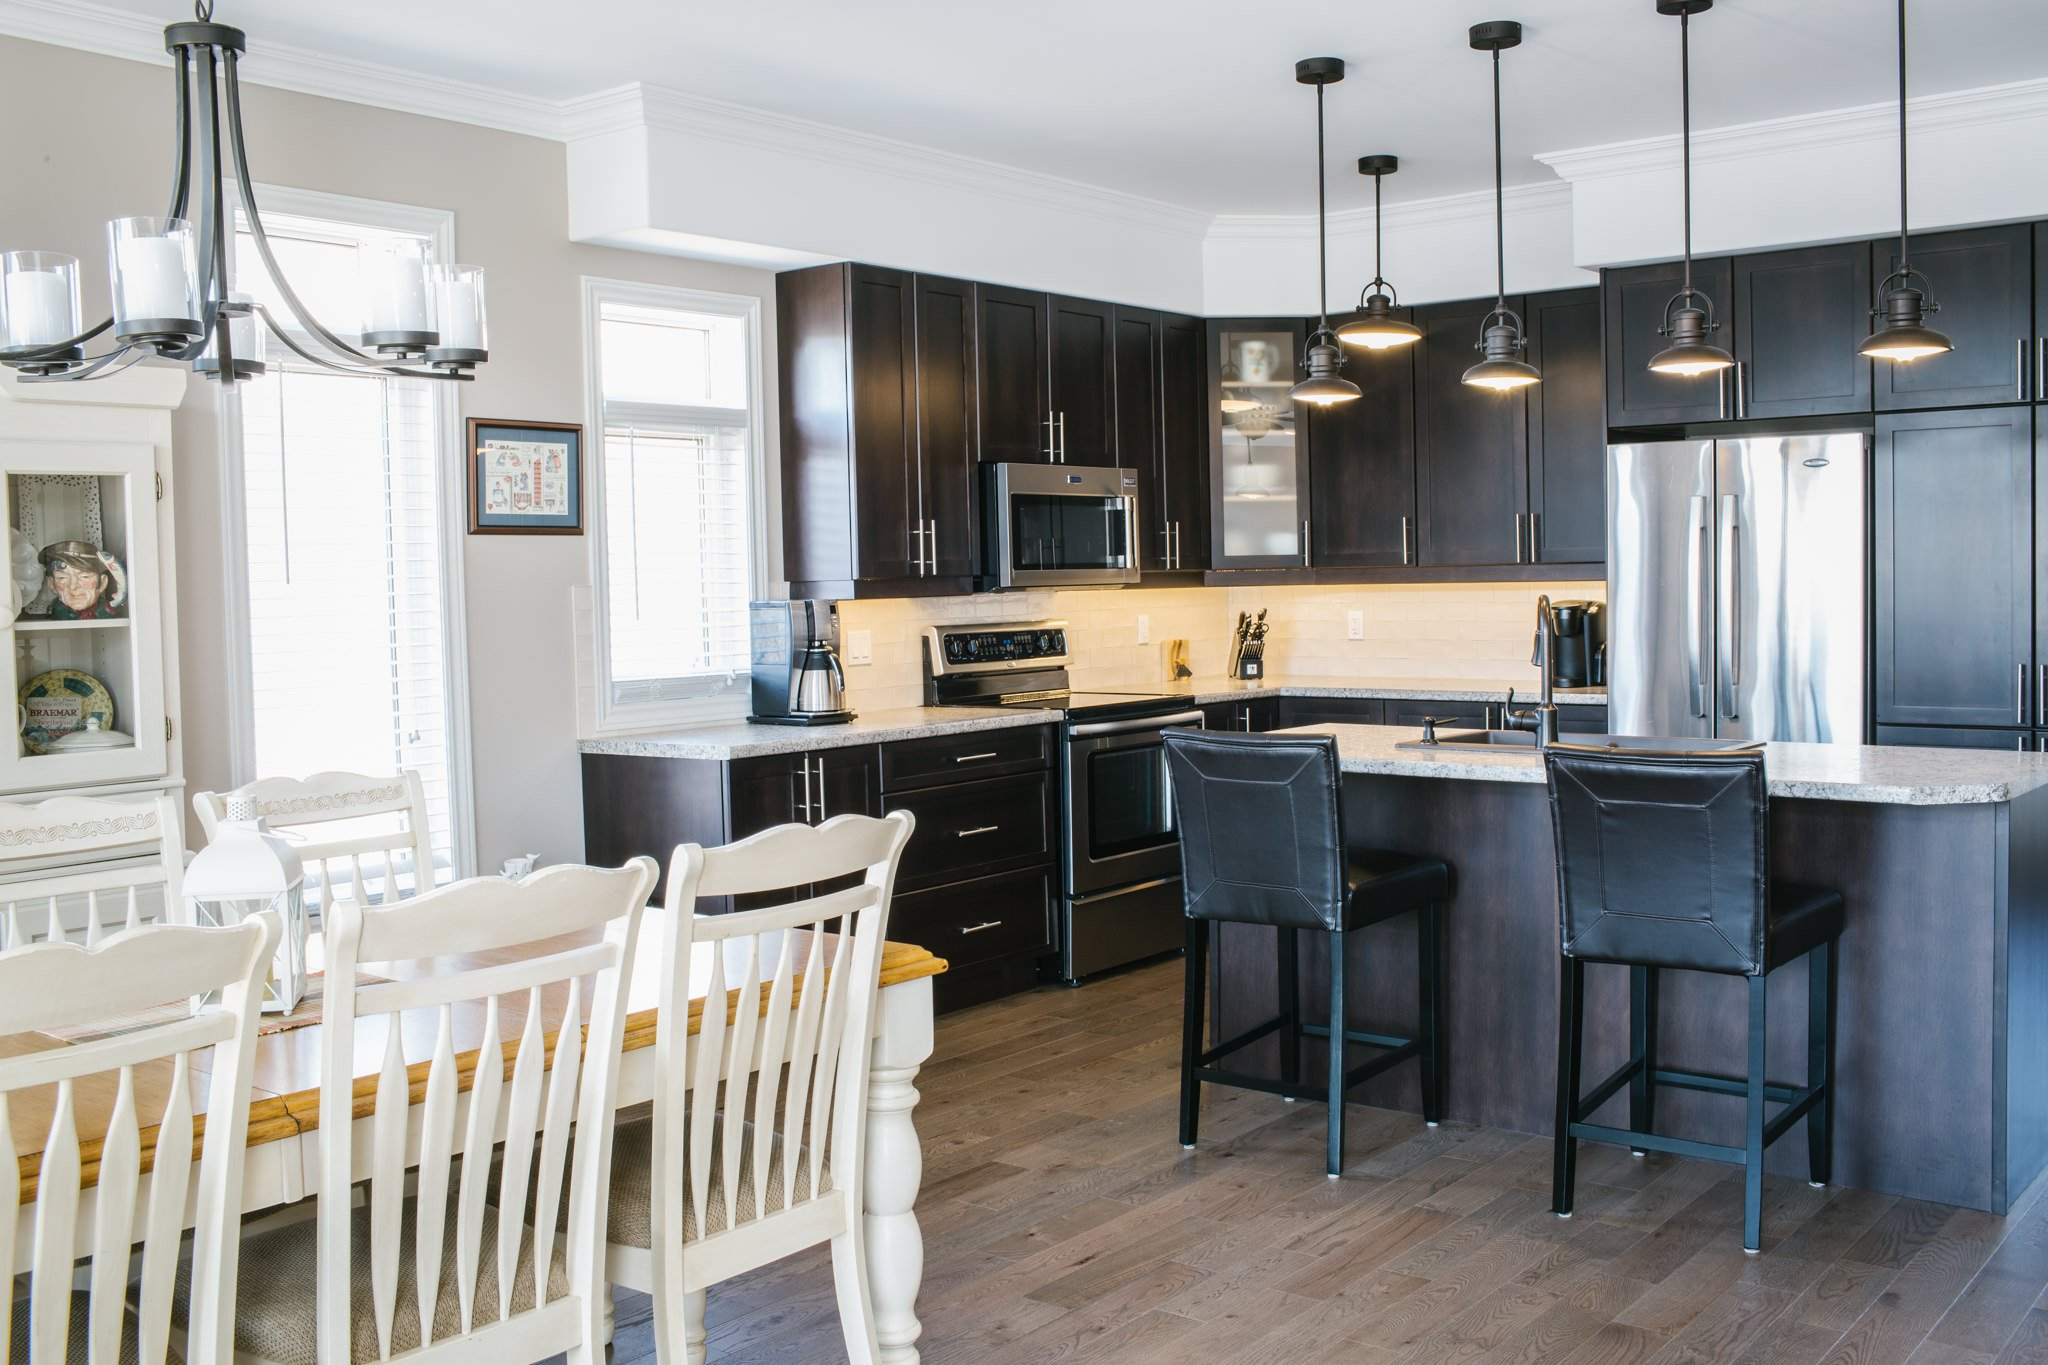 Photo 15: Photos: 70 Shewman Road in Brighton: Residential Detached for sale : MLS®# 184430